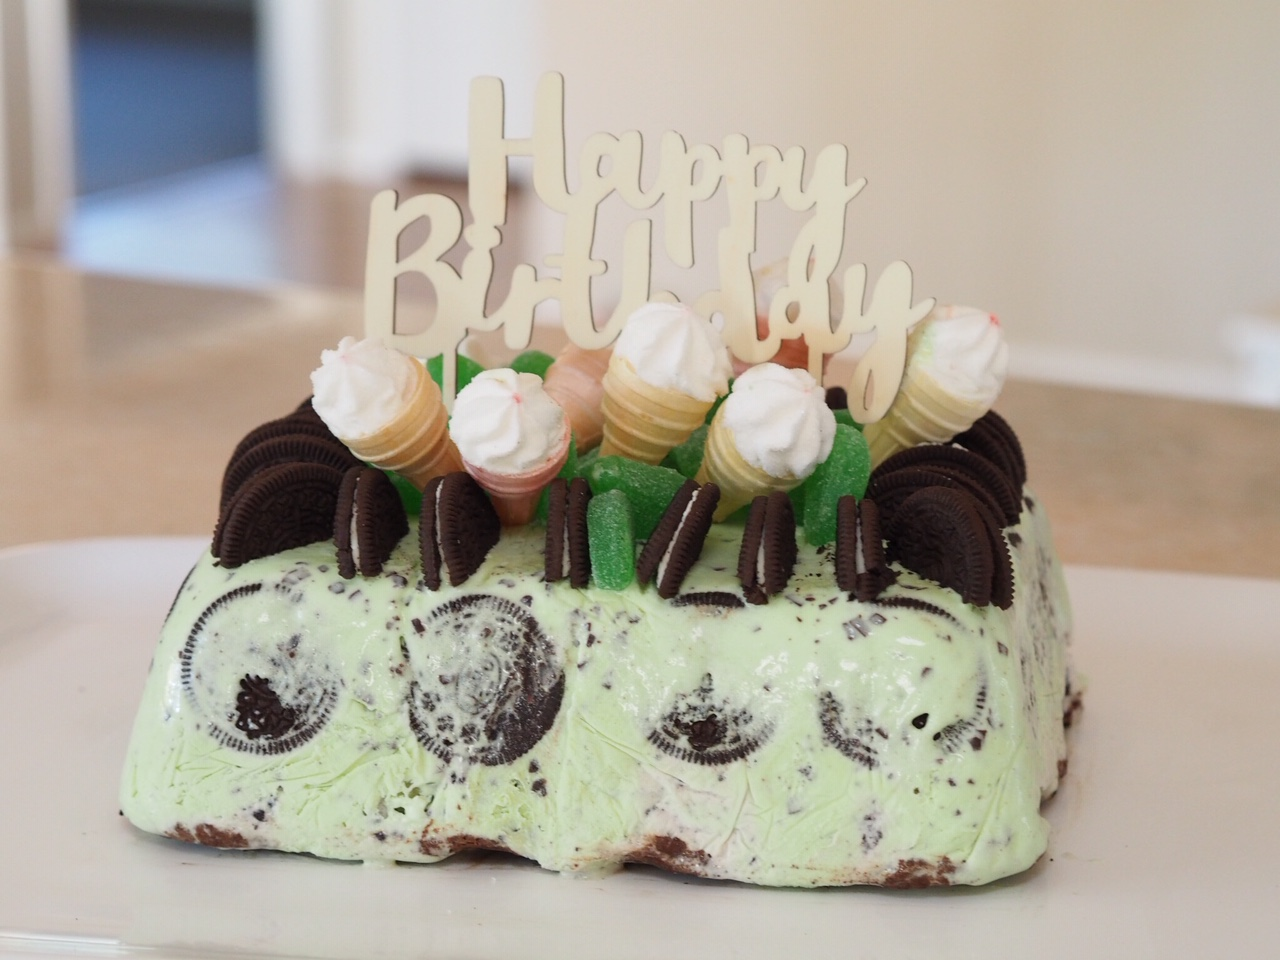 Choc Mint and Oreo Ice Cream Cake